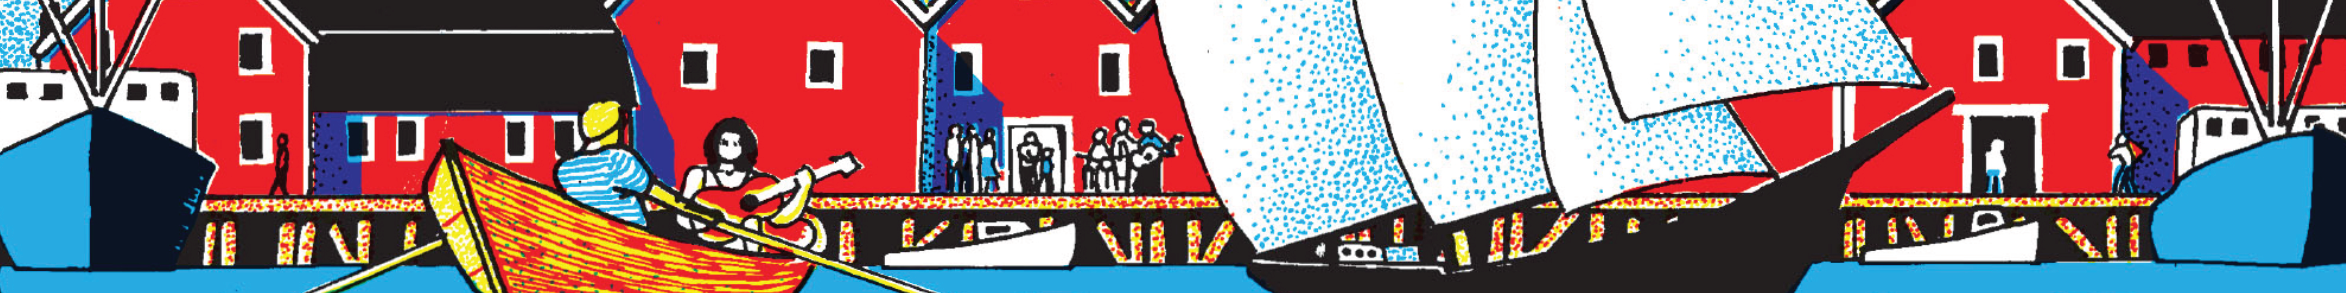 Web-Graphics-04